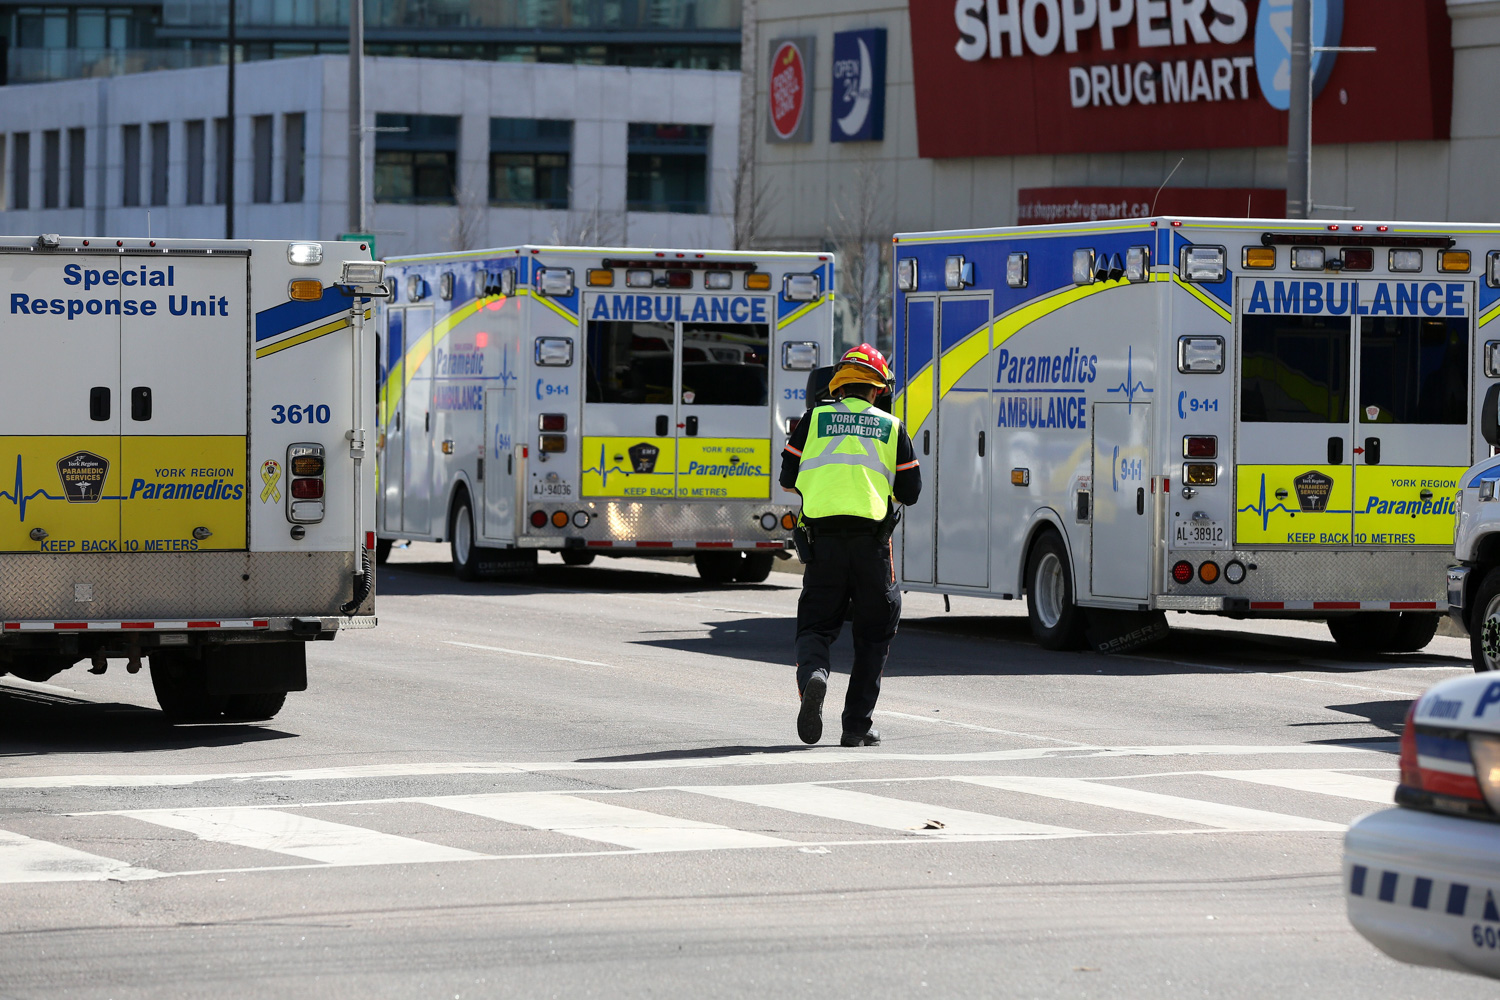 """<div class=""""meta image-caption""""><div class=""""origin-logo origin-image none""""><span>none</span></div><span class=""""caption-text"""">Police officers stand near several ambulances after a truck hit several pedestrians in Toronto, Ontario, on on April 23, 2018. (Lars Hagberg/AFP/Getty Images)</span></div>"""